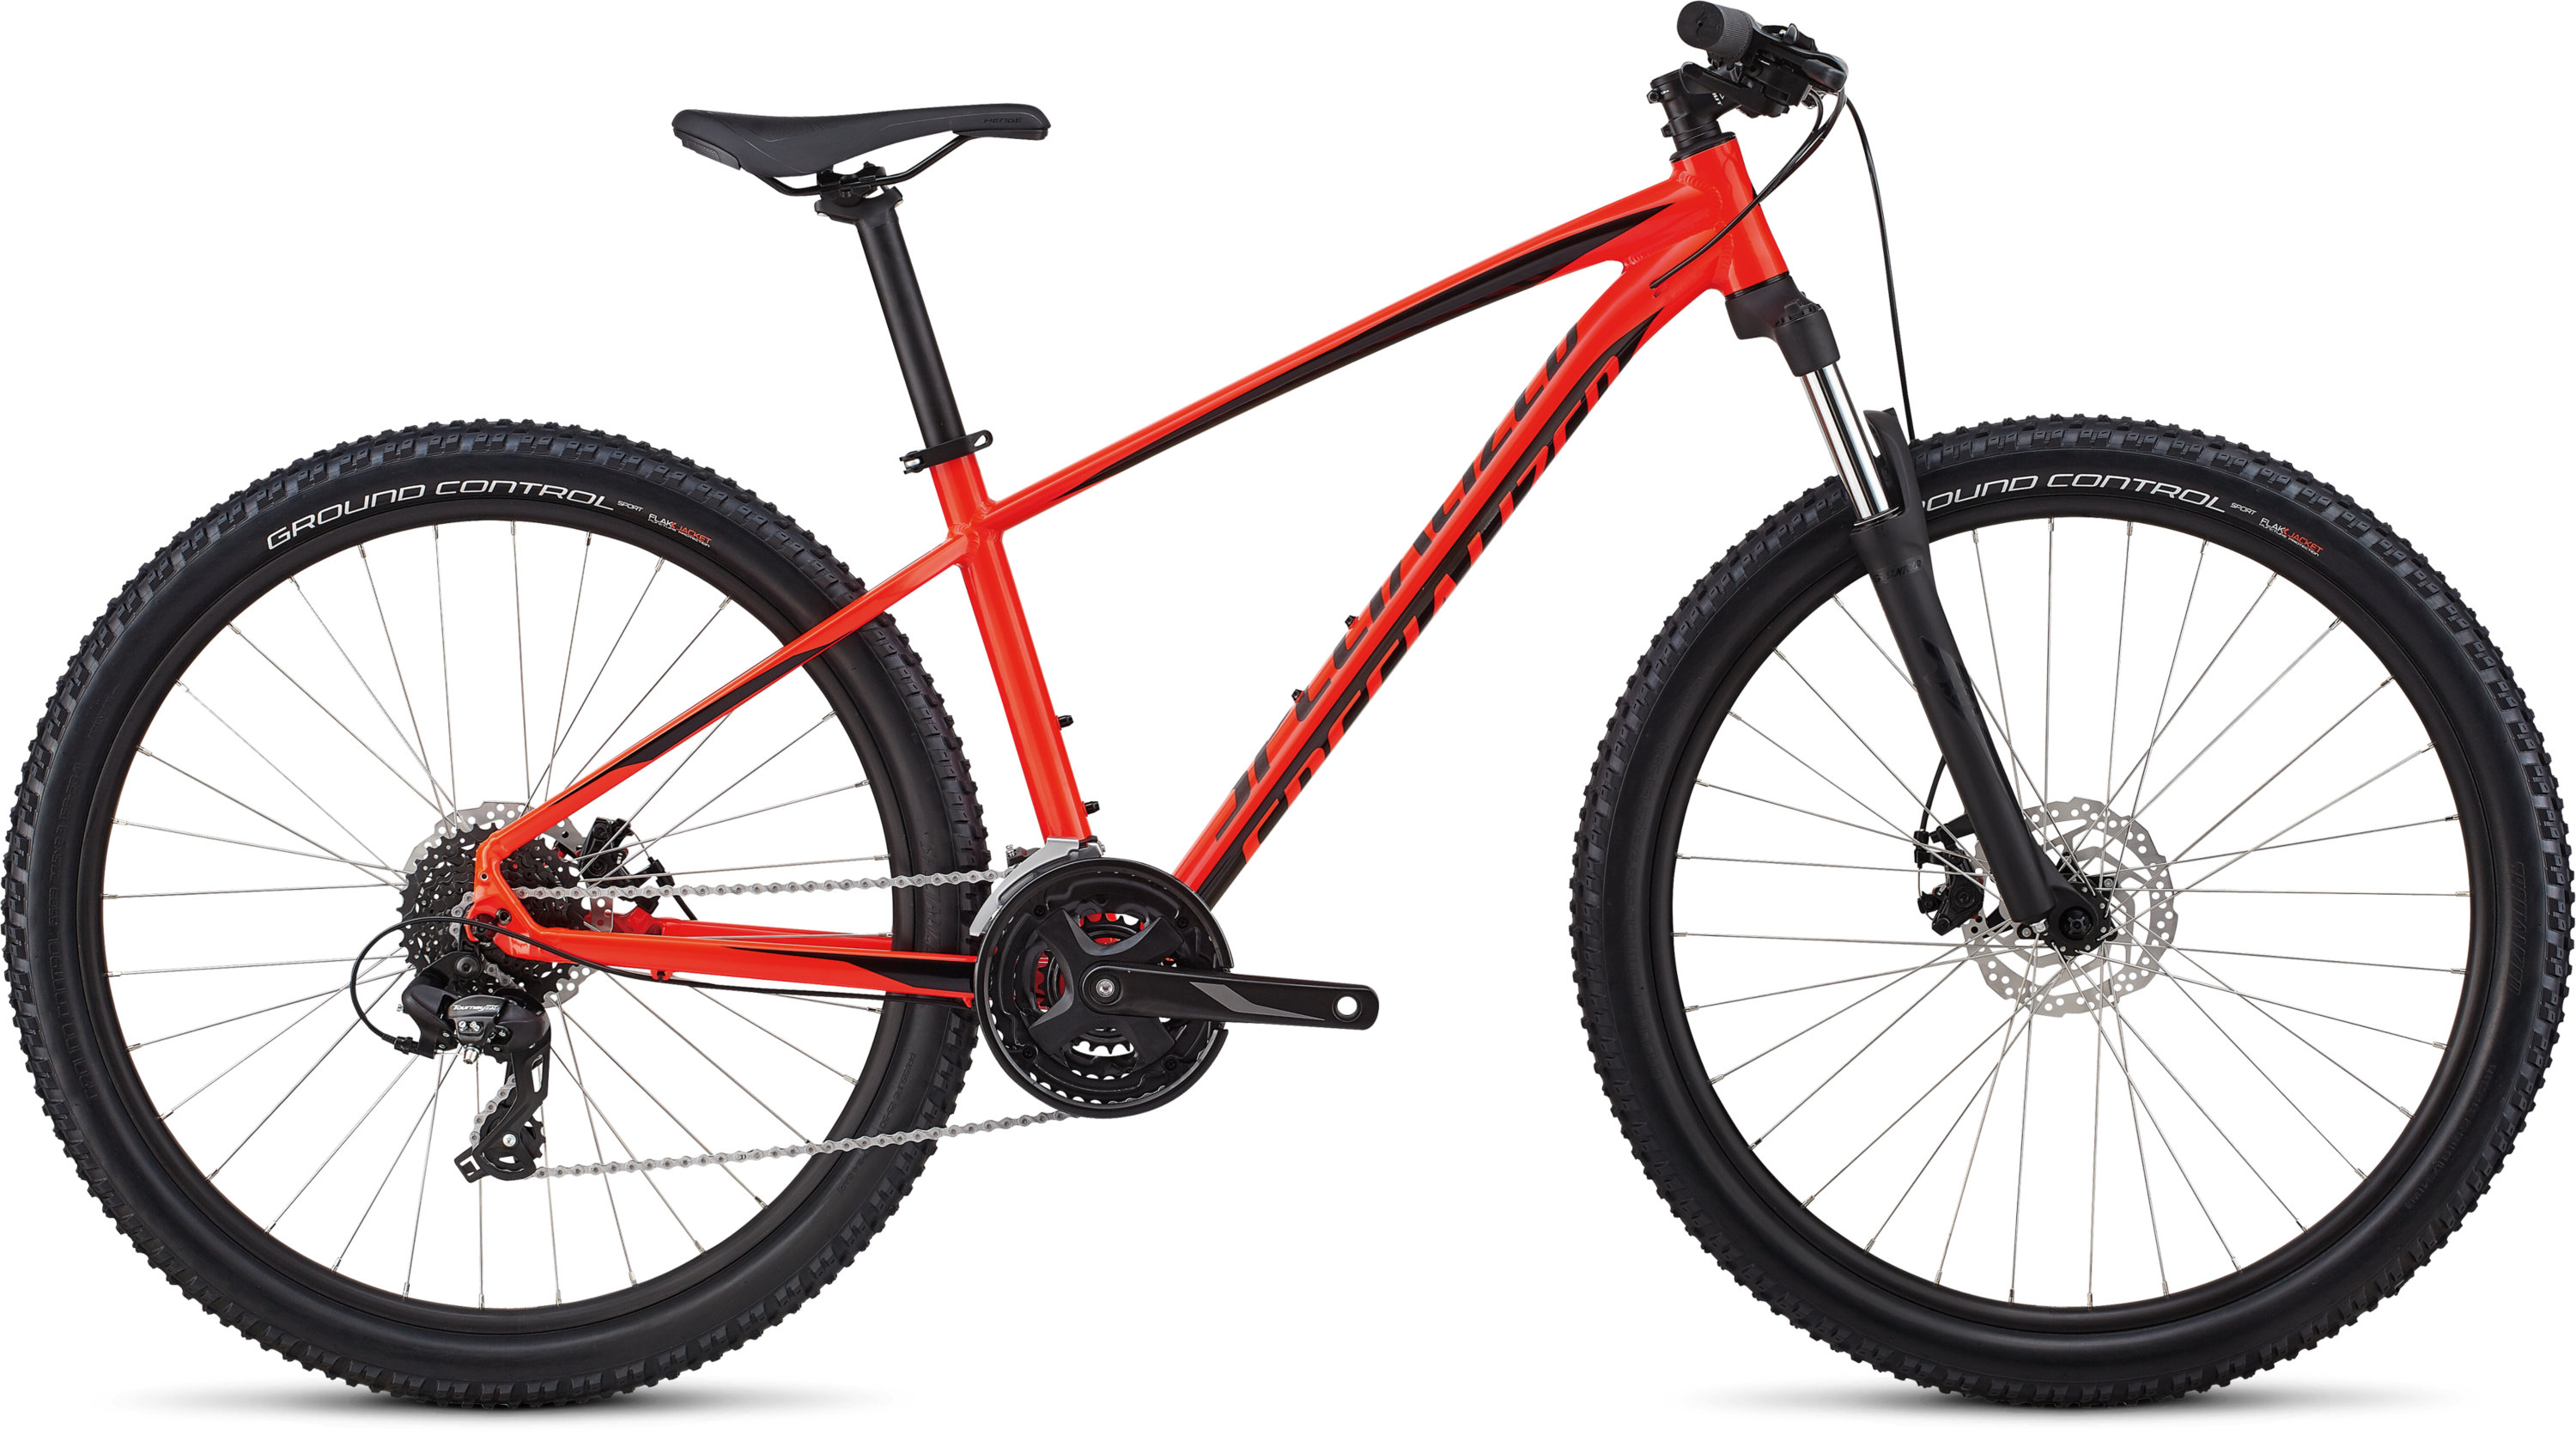 Specialized Men´s Pitch 27.5 GLOSS ROCKET RED / BLACK M - Specialized Men´s Pitch 27.5 GLOSS ROCKET RED / BLACK M